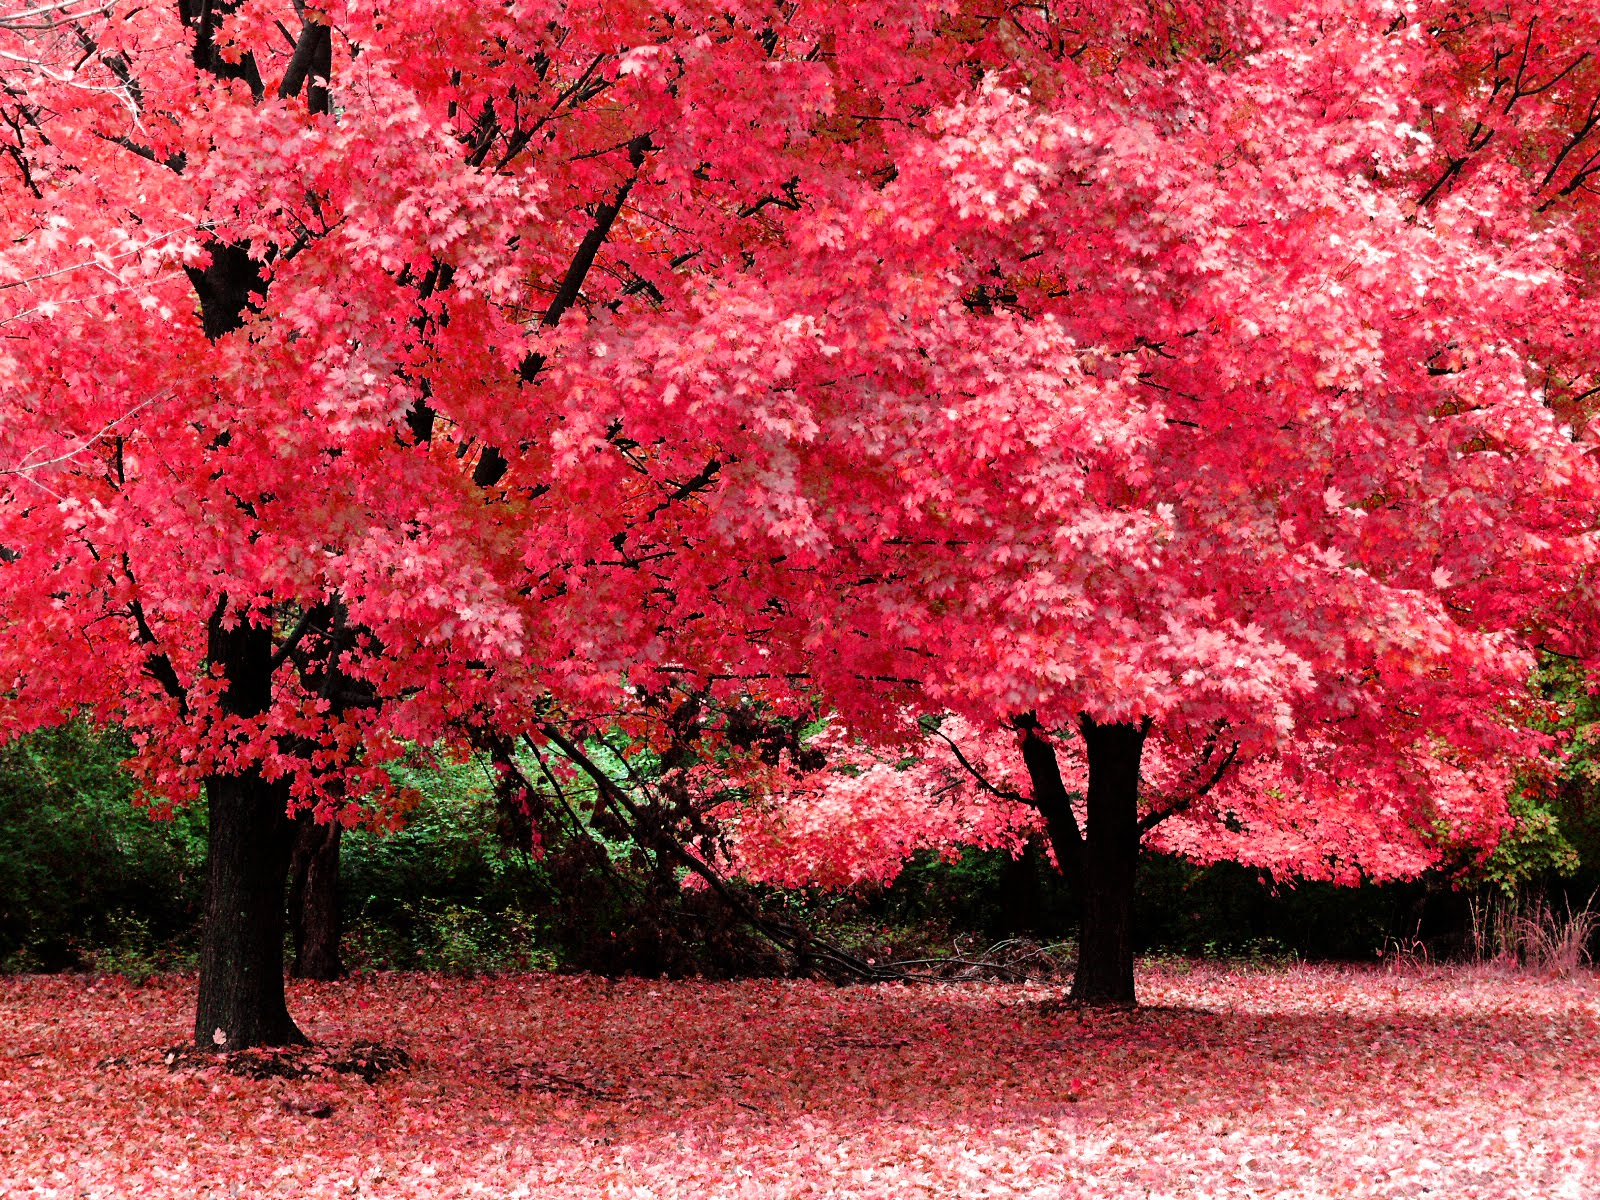 ws Pink trees 1600x1200 ws Pink and white trees 1600x1200 hd wallpapers indian global tamil sex in tress sexy roads nude girls arabic sexy girls in trees high quality wallpapers pink rose white black red r Click Here to Watch Full HD Video